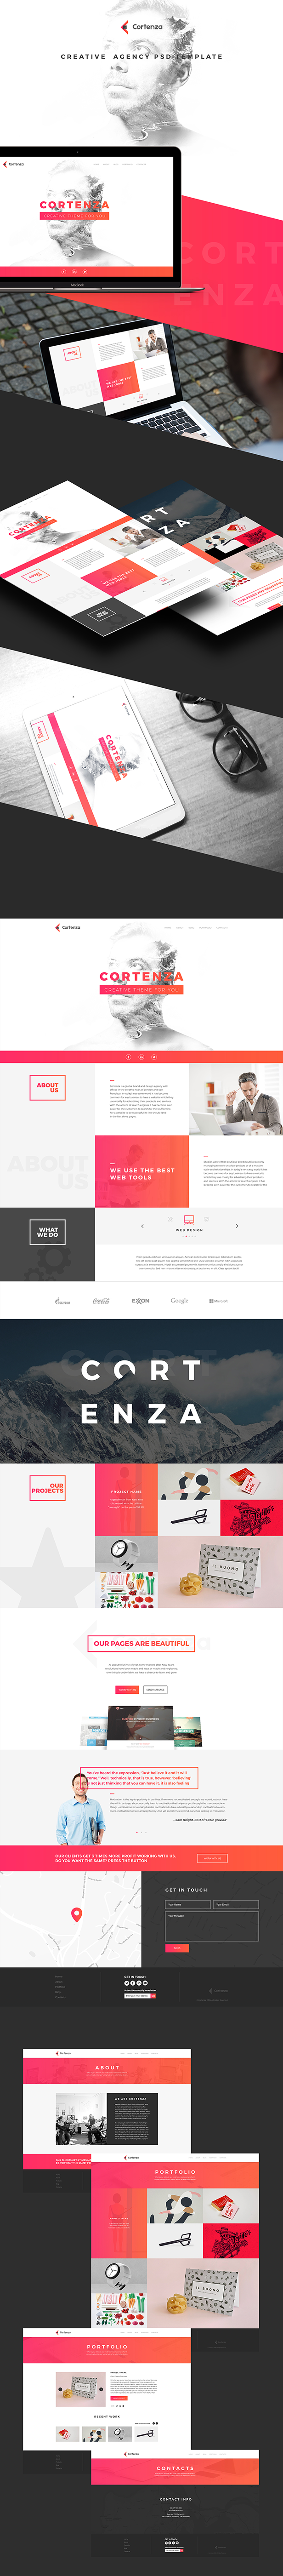 Cortenza - Creative Agency PSD Template - 1